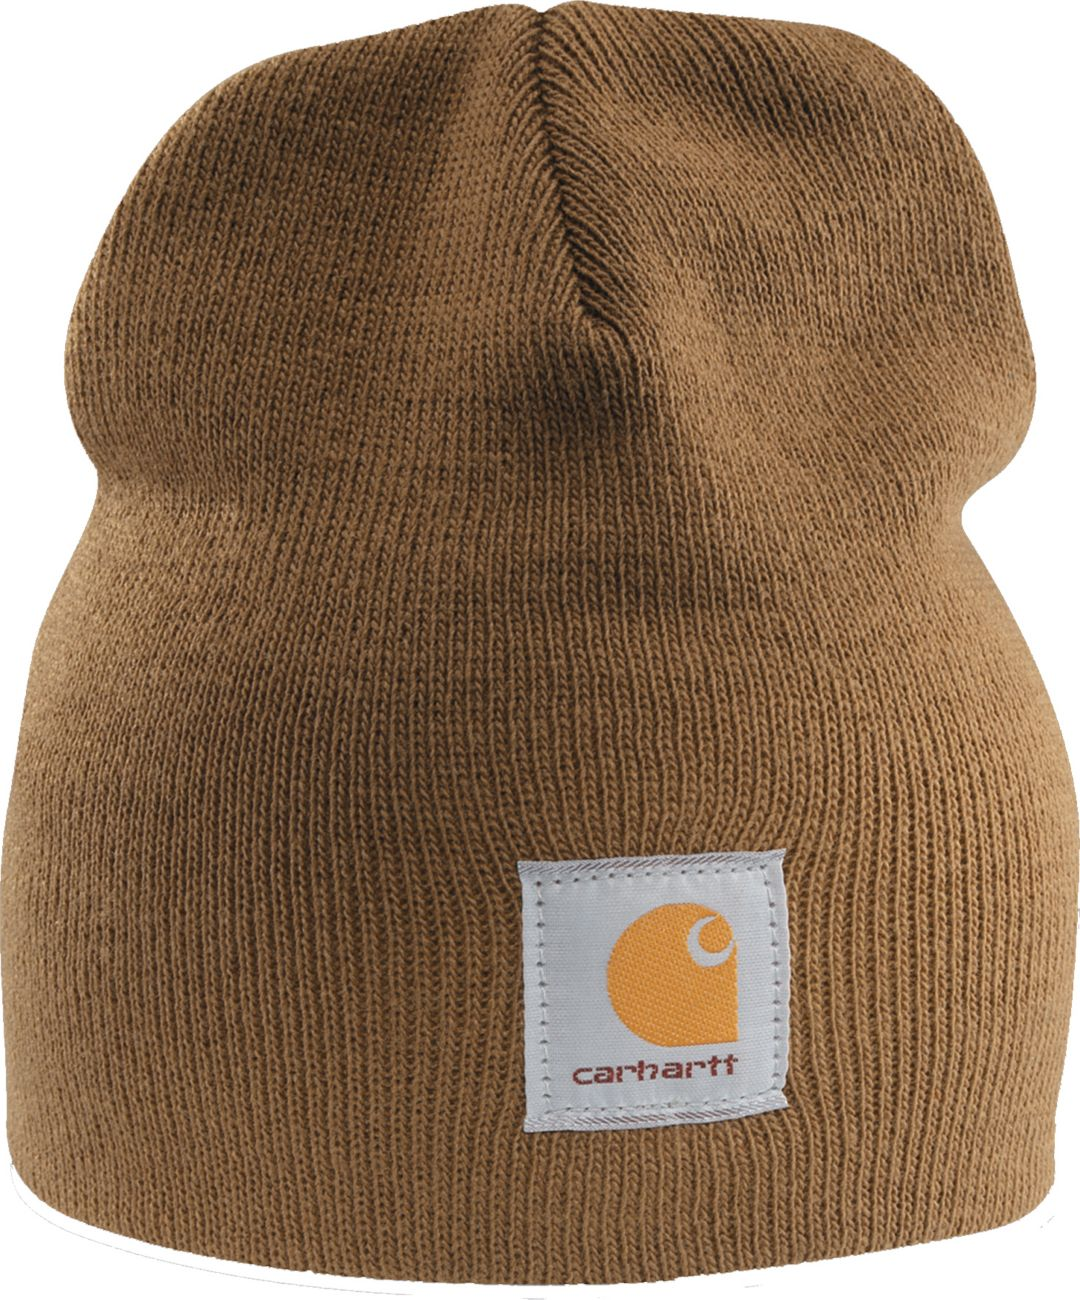 36861caf9eea2f Carhartt Men's Acrylic Knit Cap | DICK'S Sporting Goods